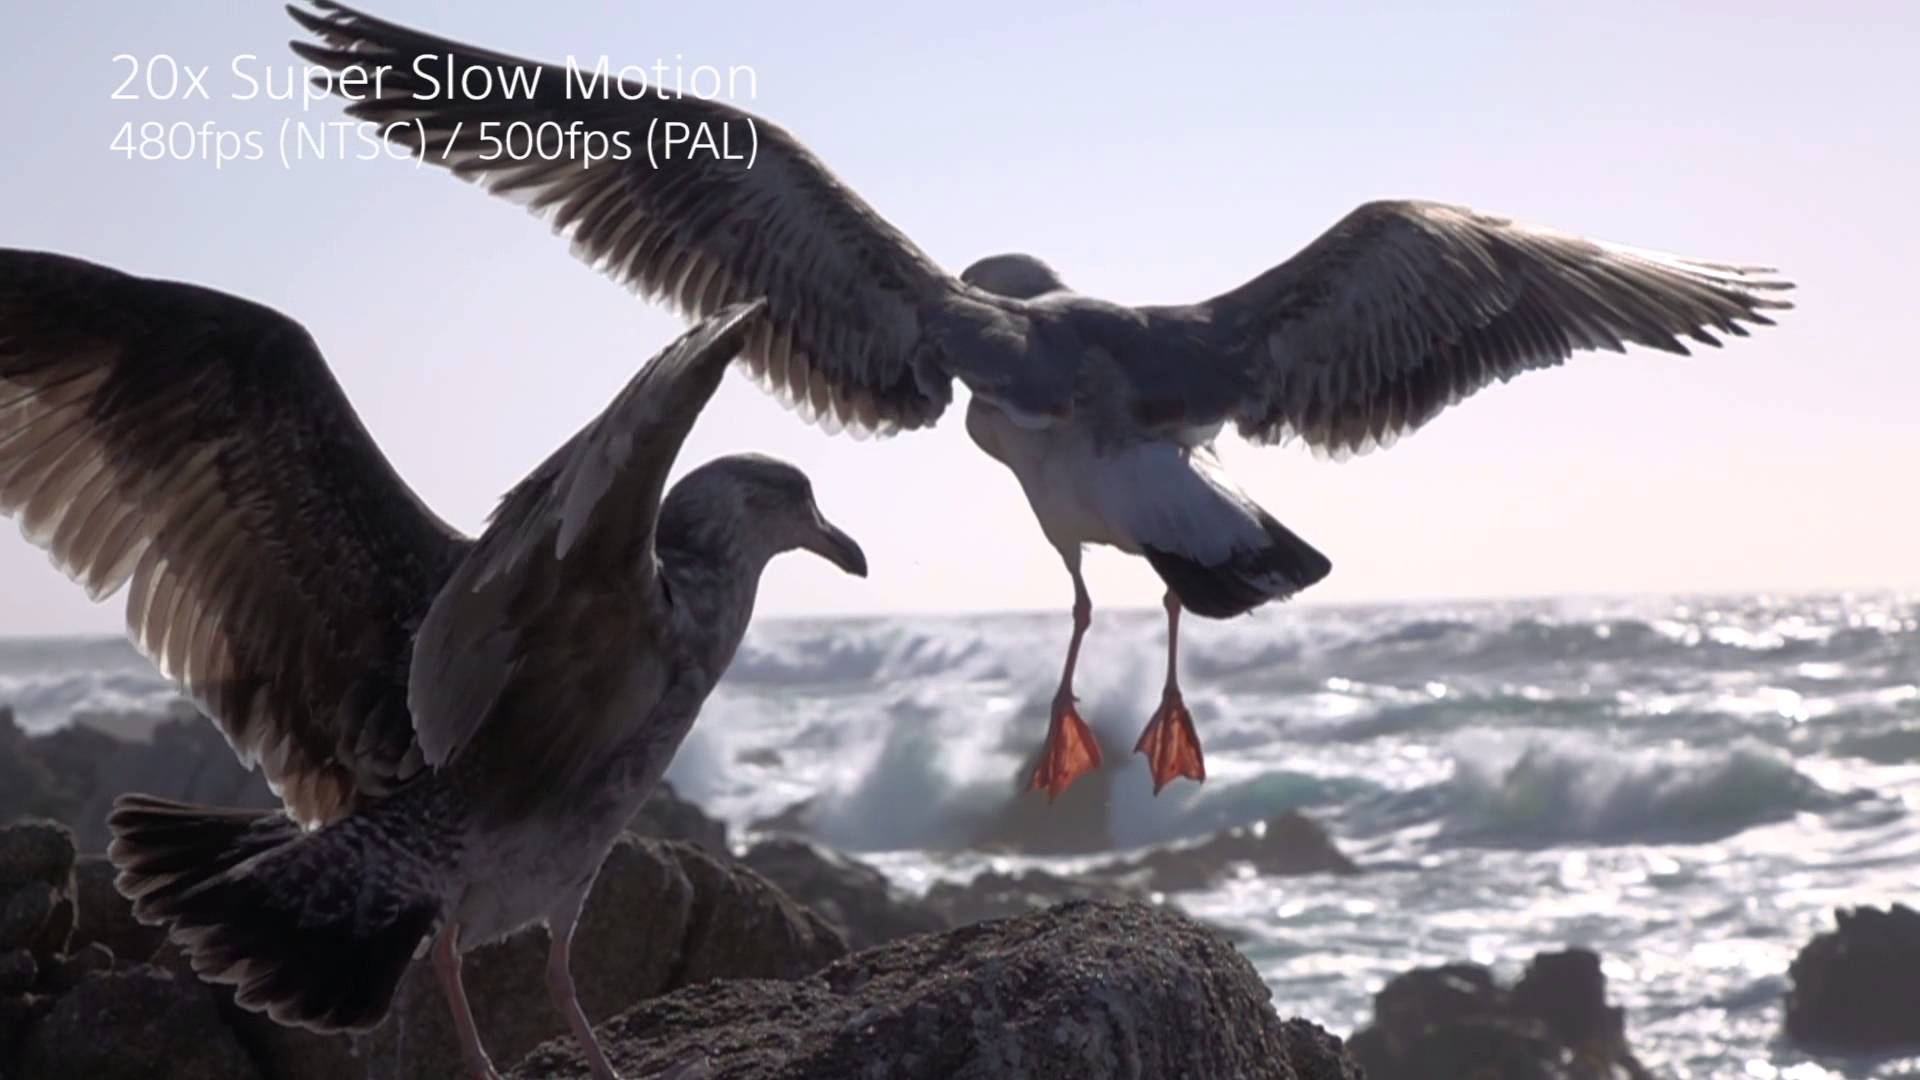 Sony Rx100 Iv Amp Rx10 Ii Cameras Super Slow Motion Seagulls